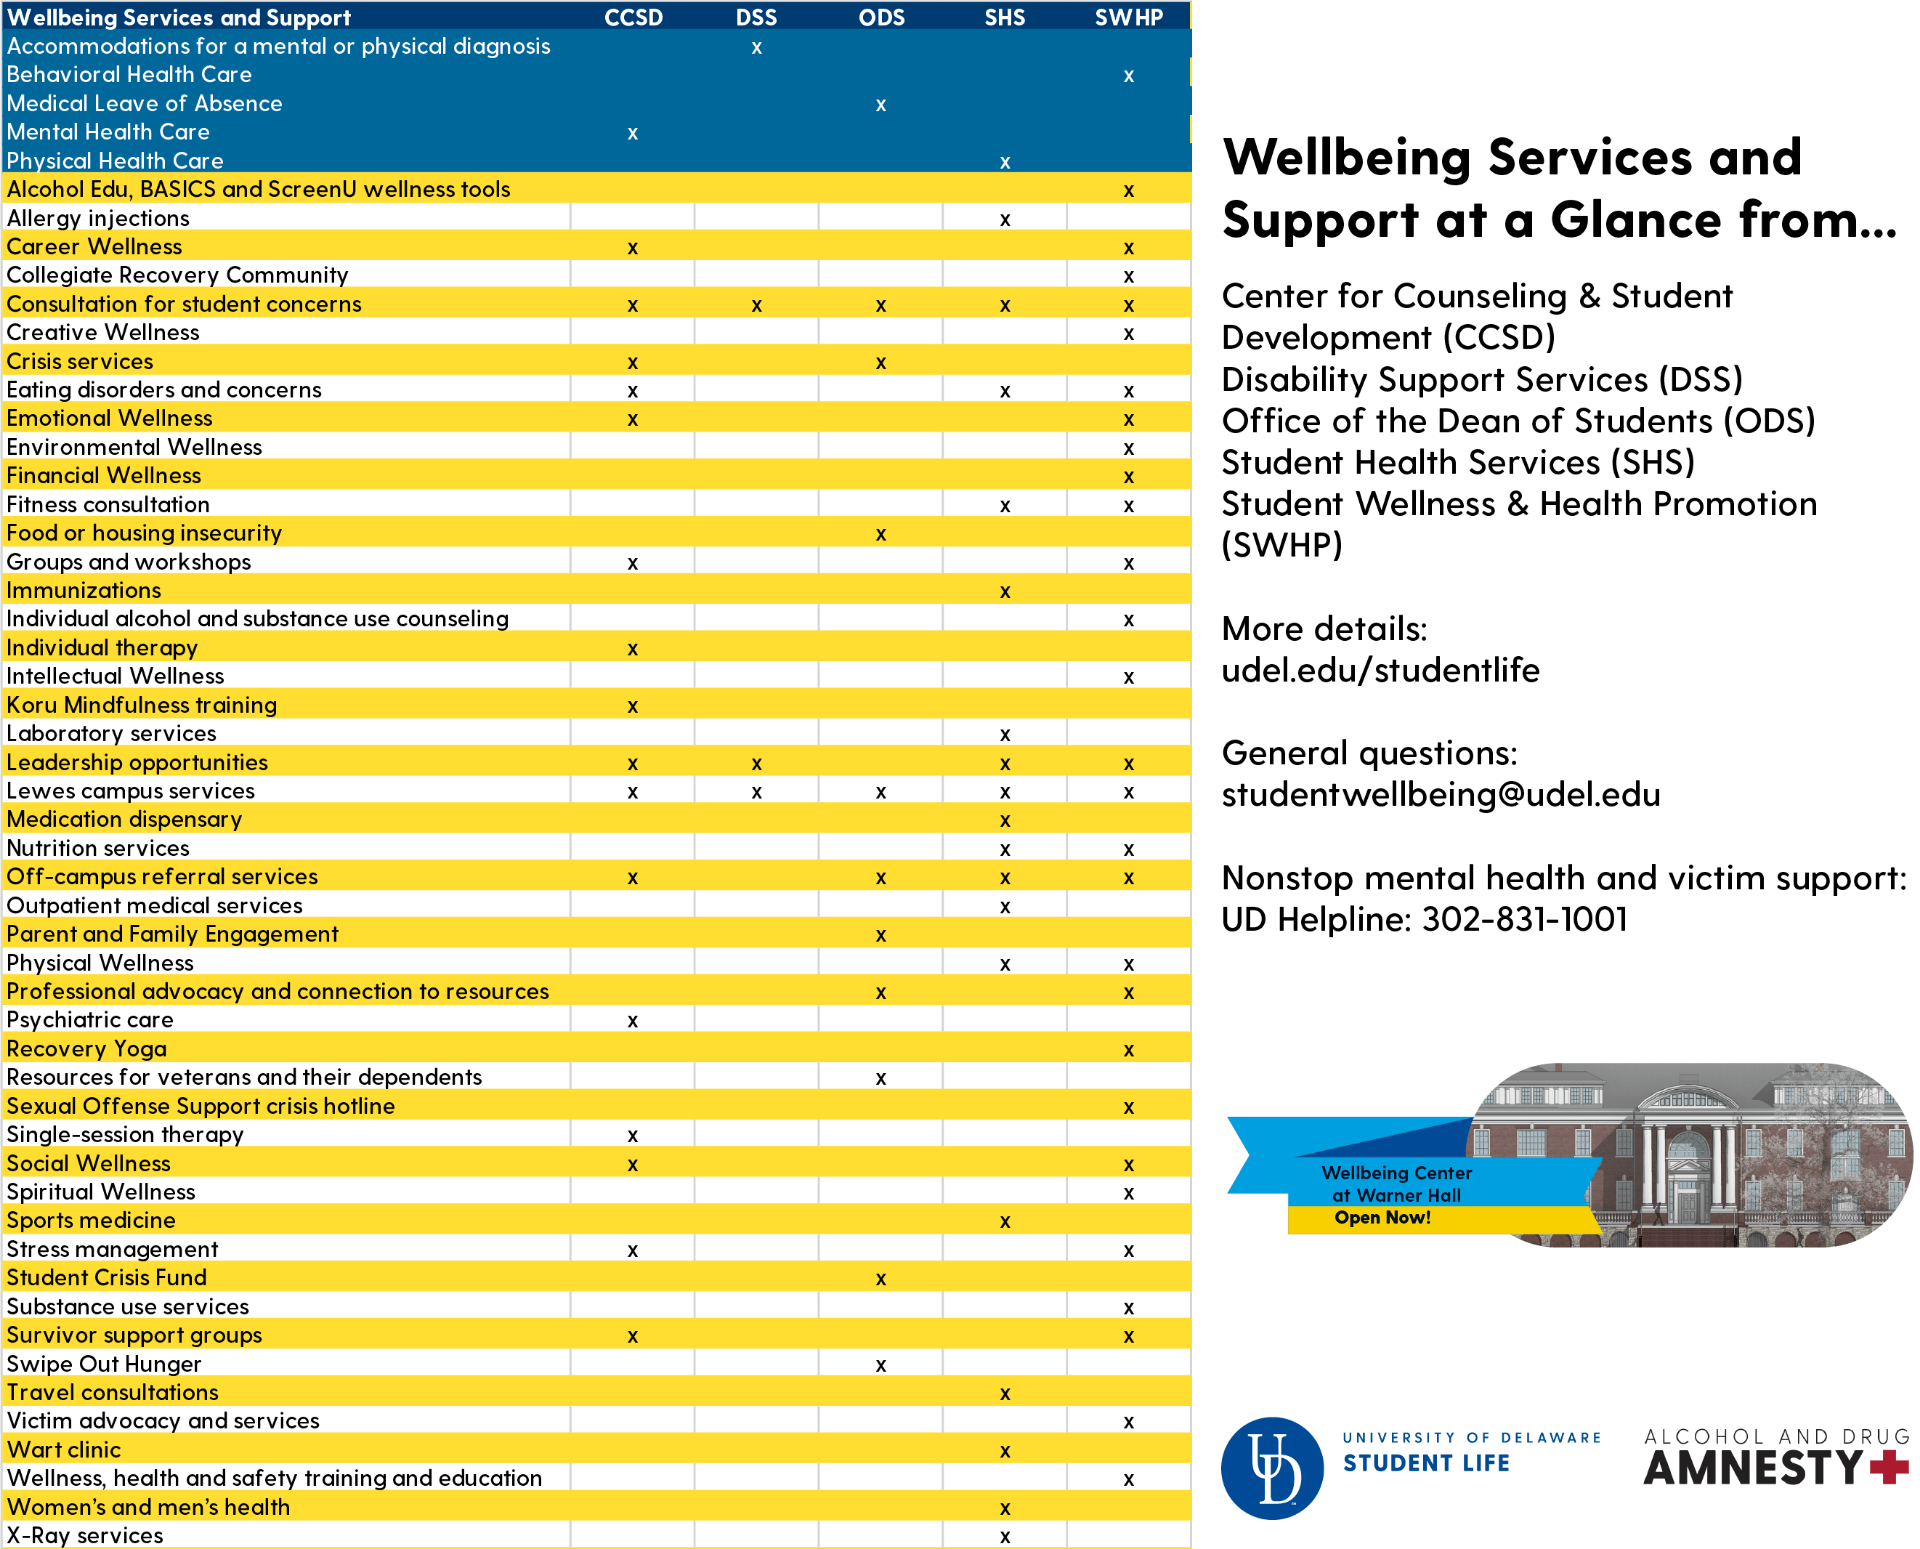 UD Wellbeing Services and Support at a Glance for which accessible pdf is linked above